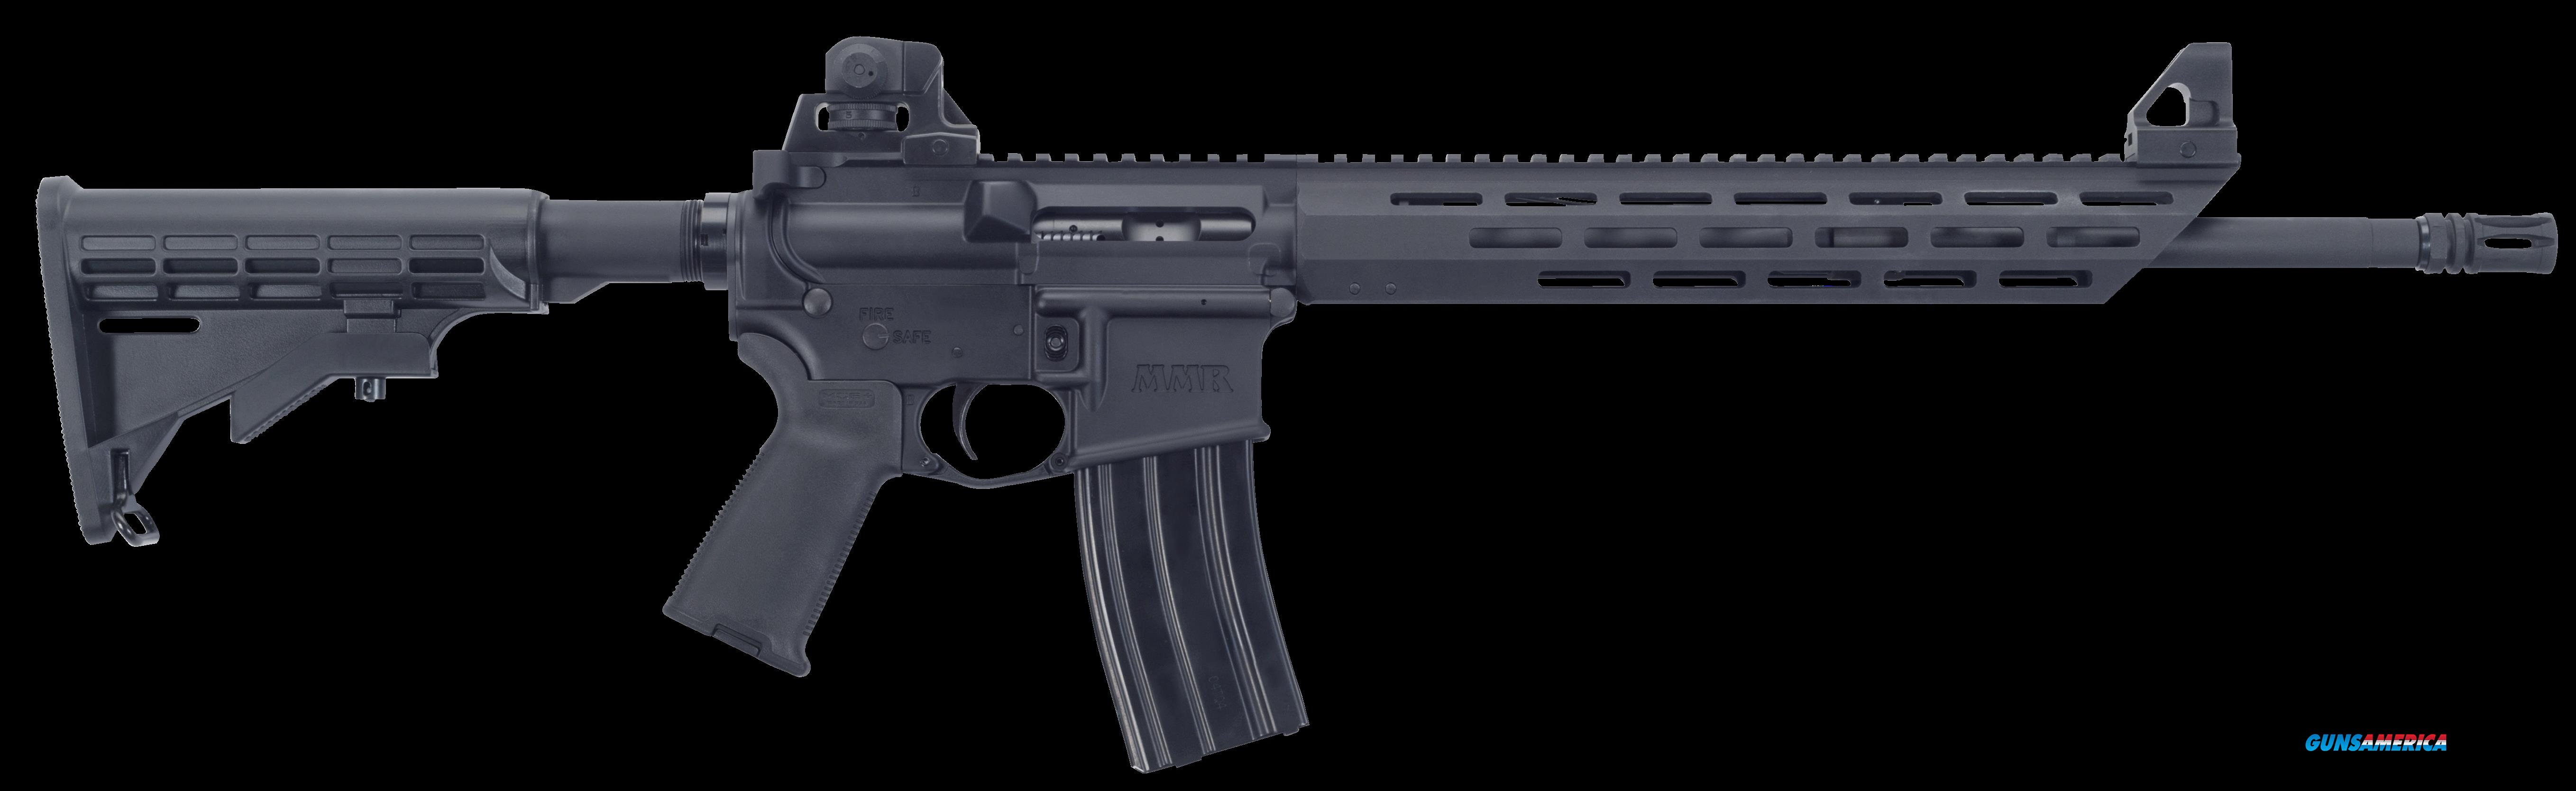 "Mossberg 65074 MMR Carbine Semi-Automatic 223 Rem/5.56 NATO 16.2"" 30+1 6-Position Black Stk Black  Guns > Rifles > Mossberg Rifles > MMR"